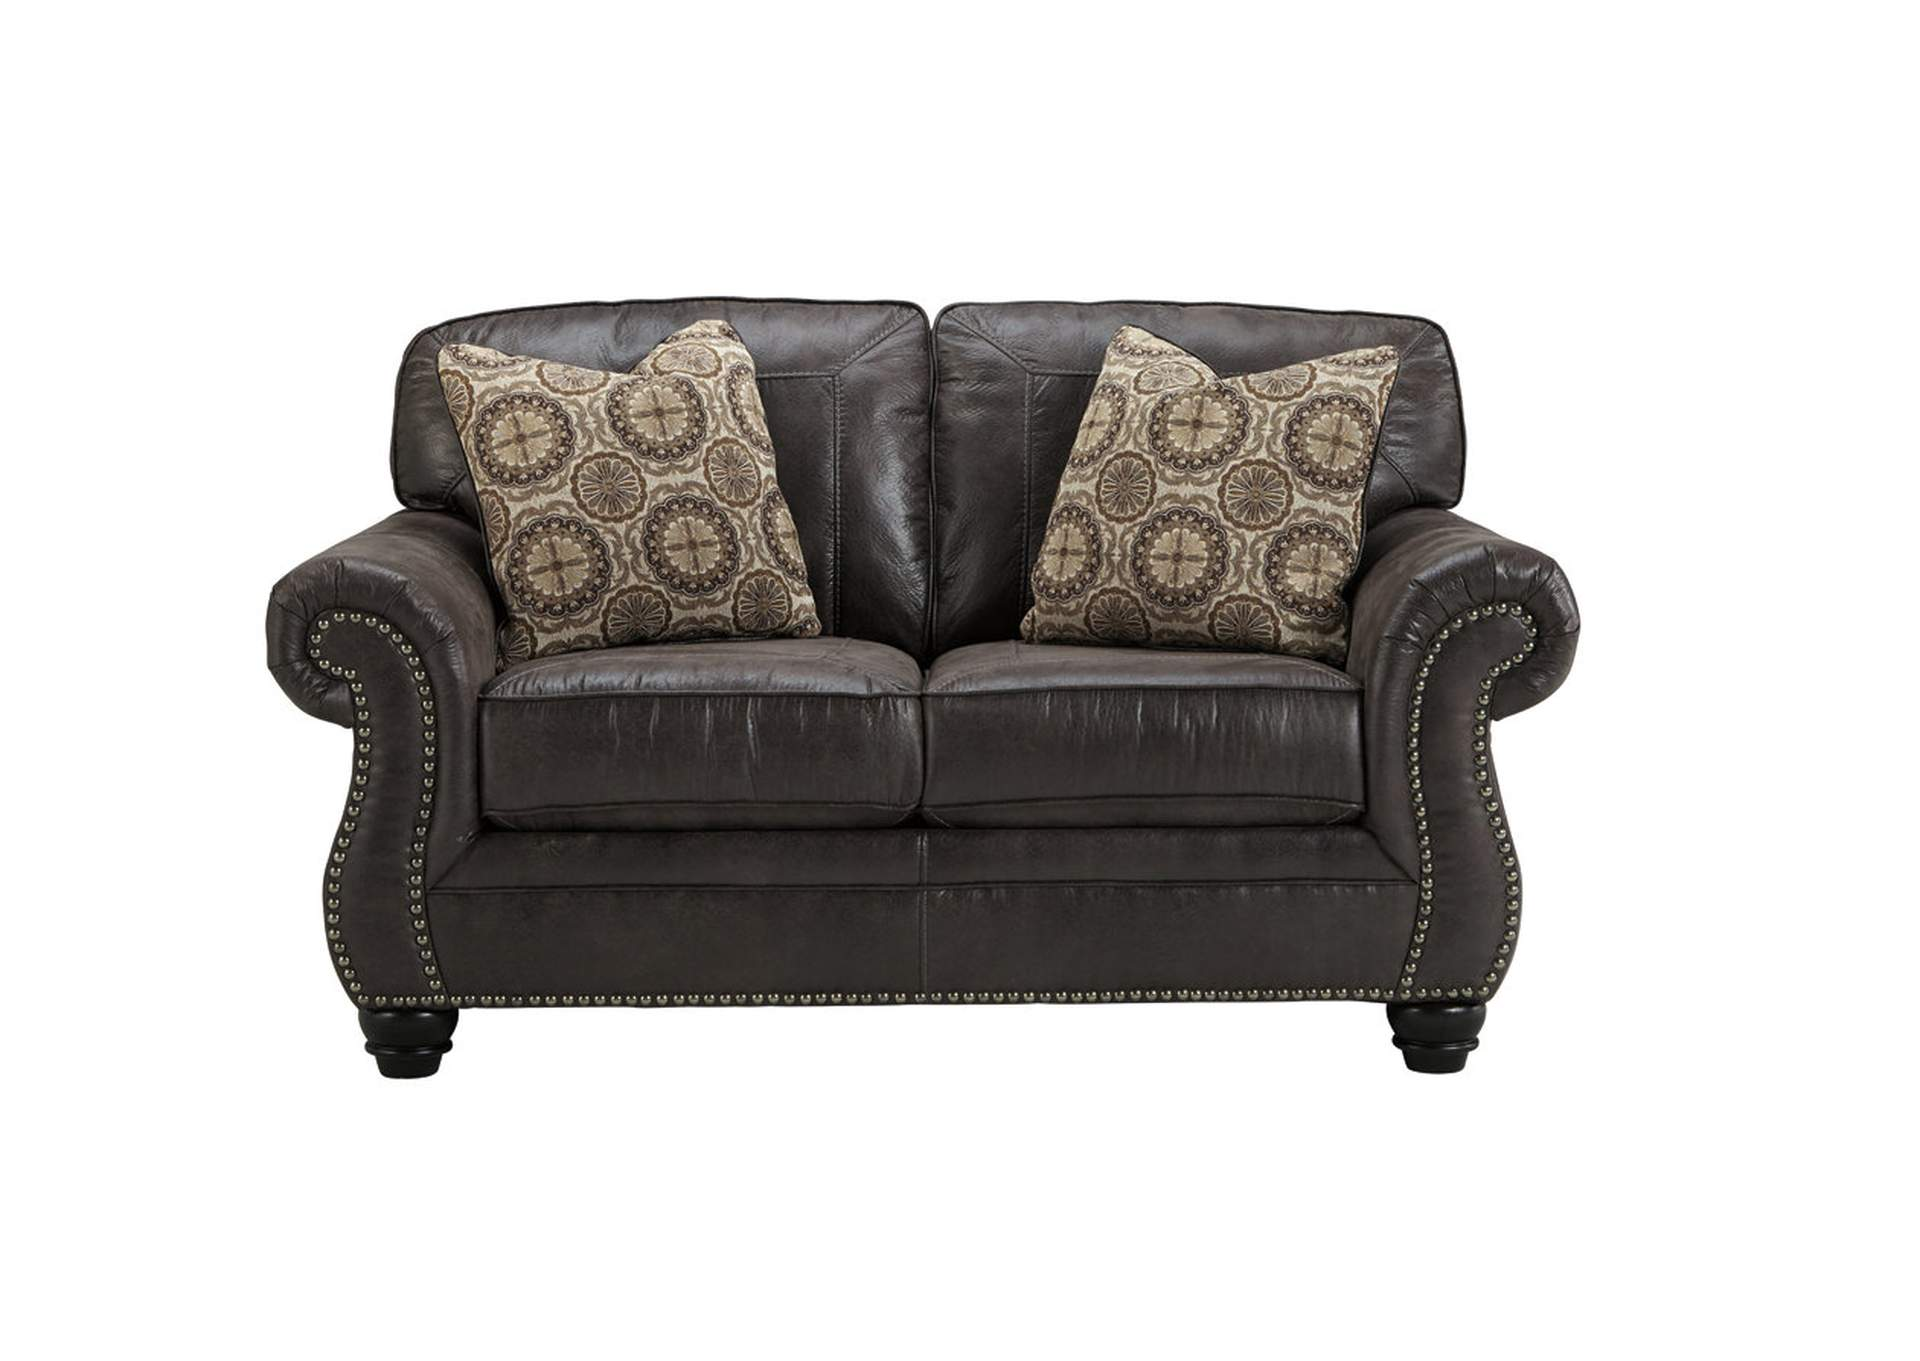 Corvin 39 S Furniture Breville Charcoal Loveseat